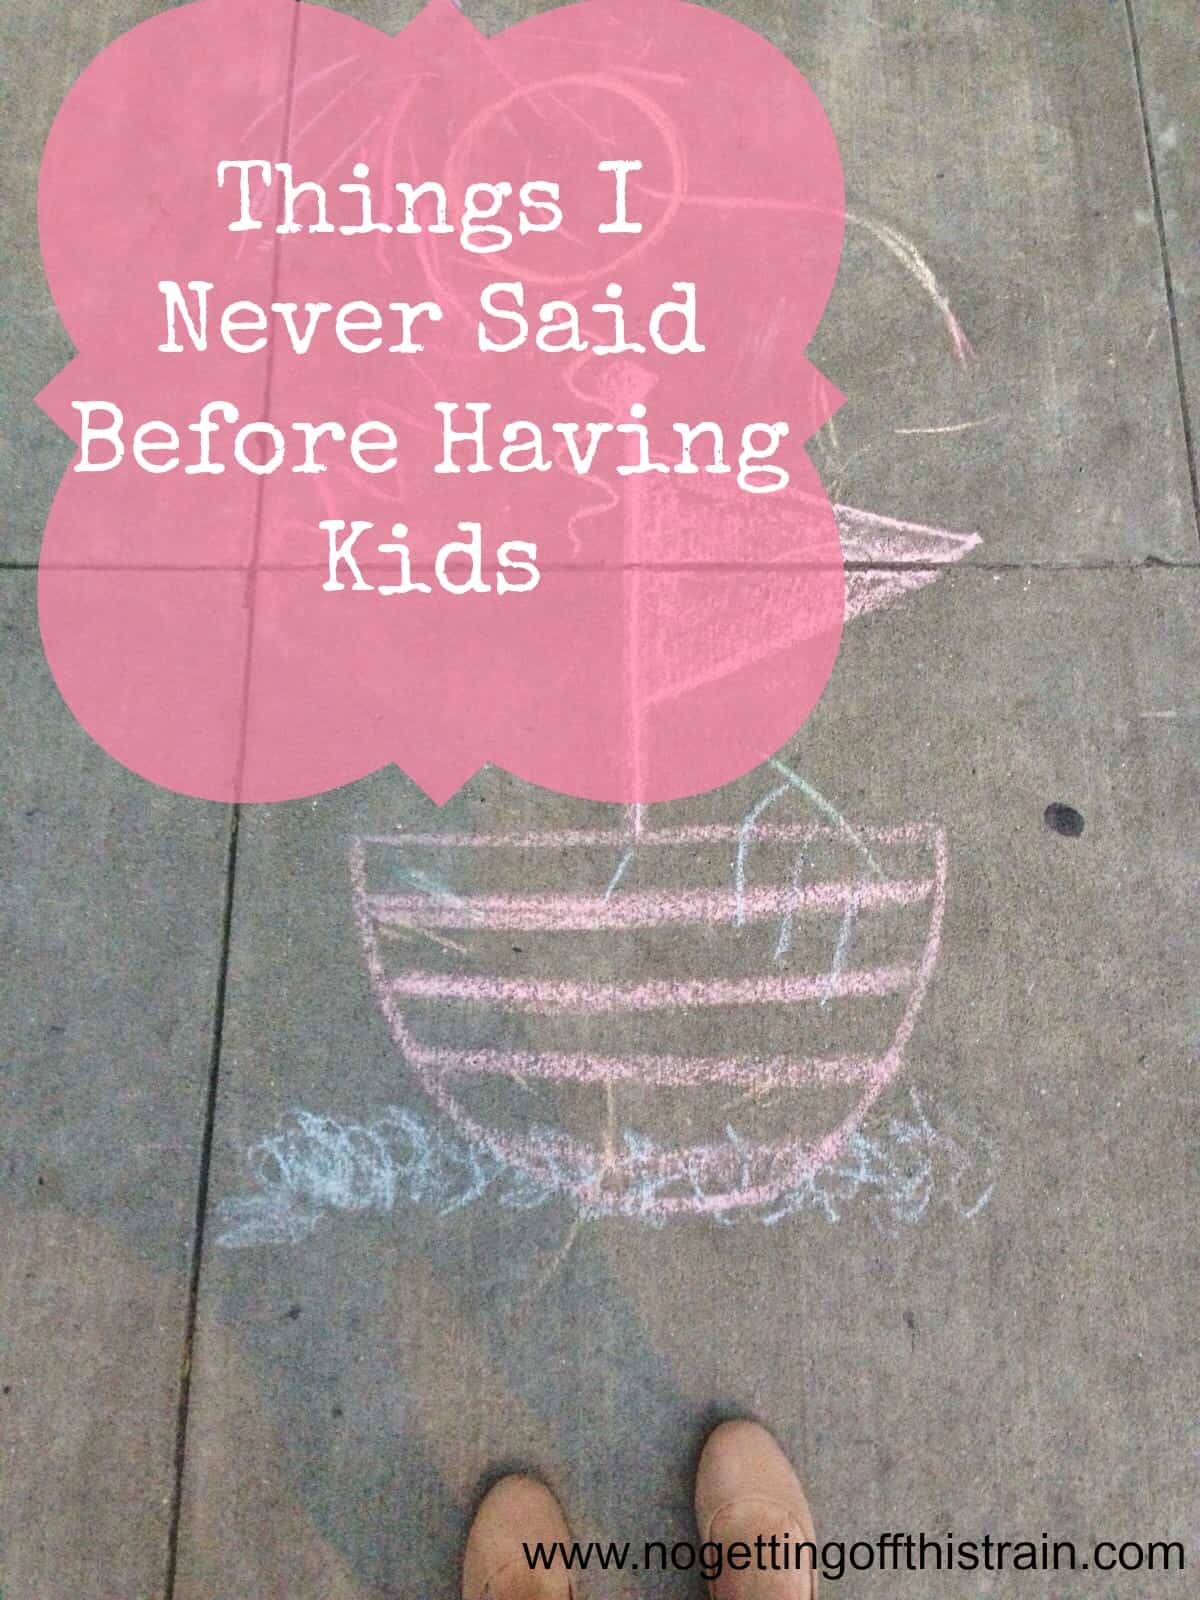 Things I Never Said Before Having Kids